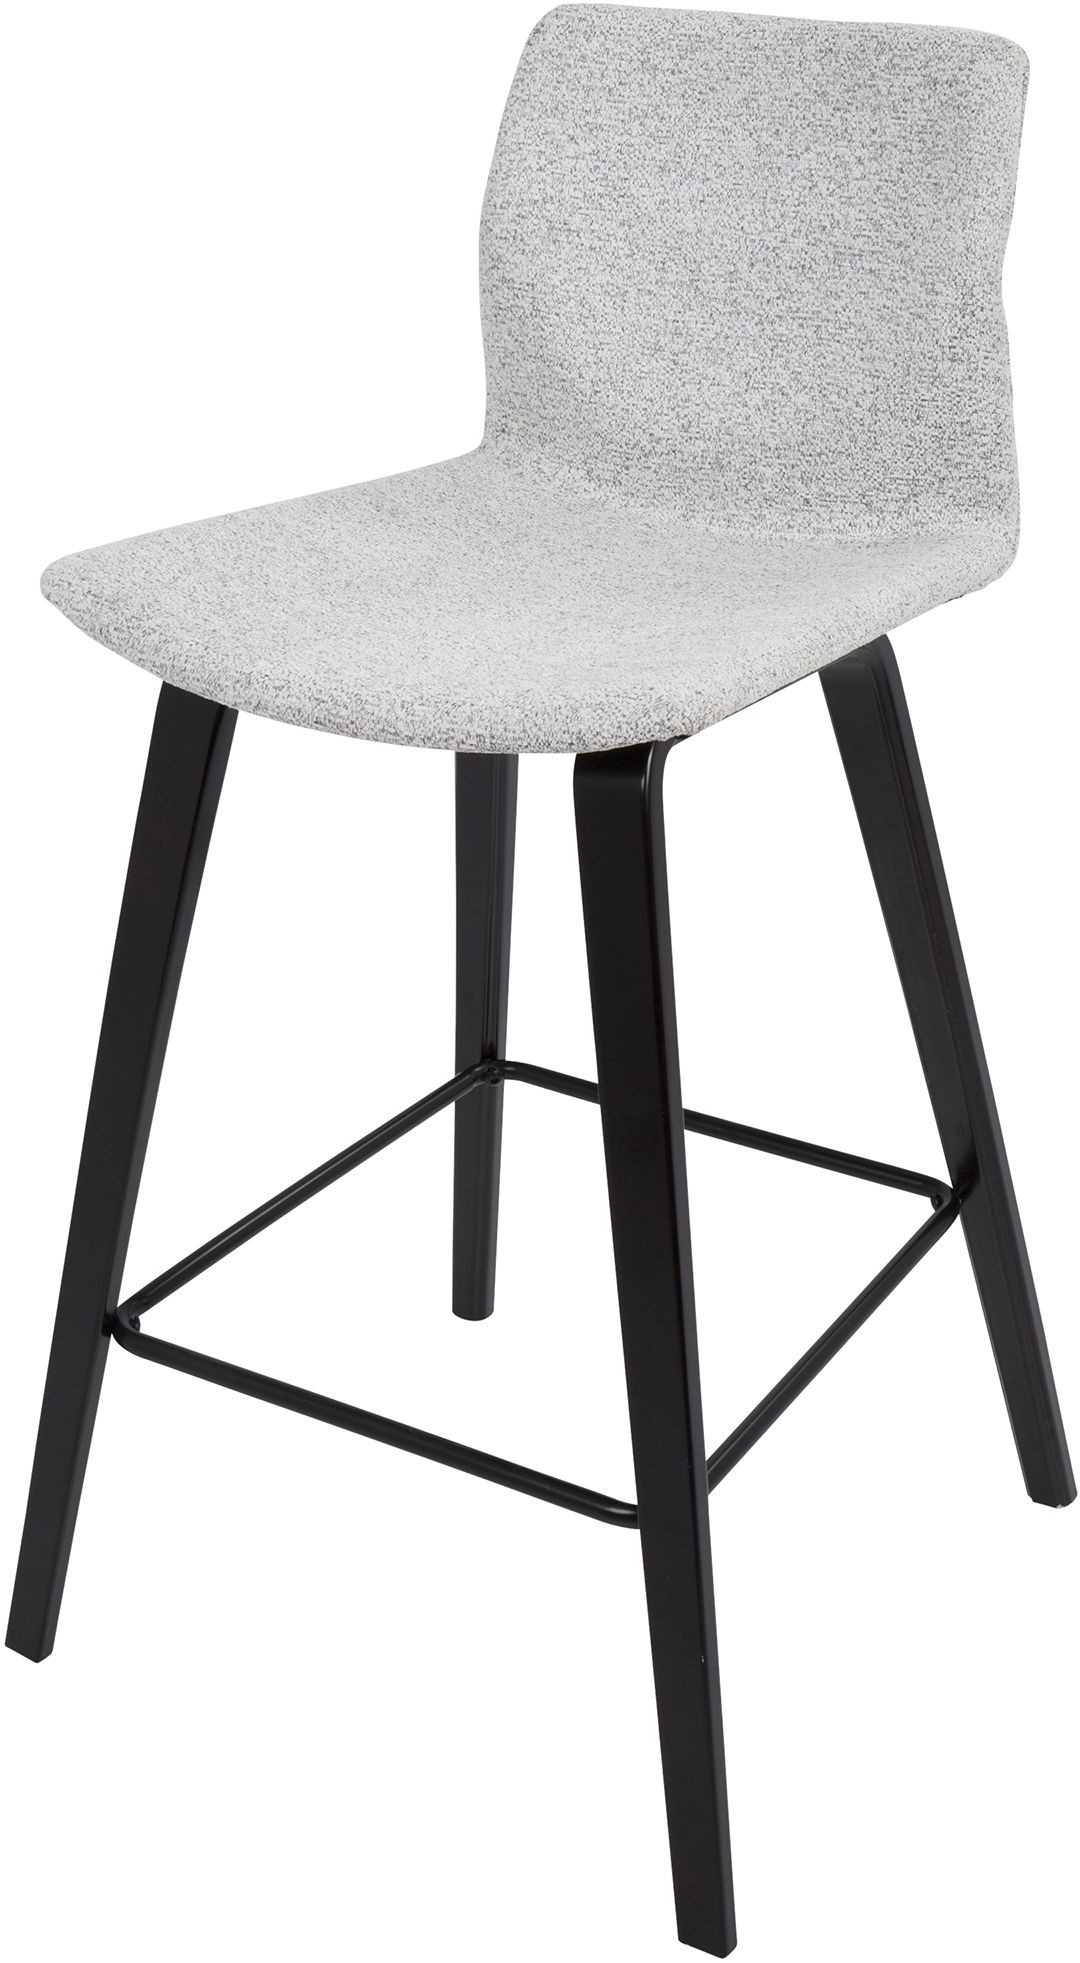 Valencia 4 Piece Counter Sets With Bench & Counterstool with regard to Popular Cabo Espresso And Light Gray Counter Stool Set Of 2 From Lumisource